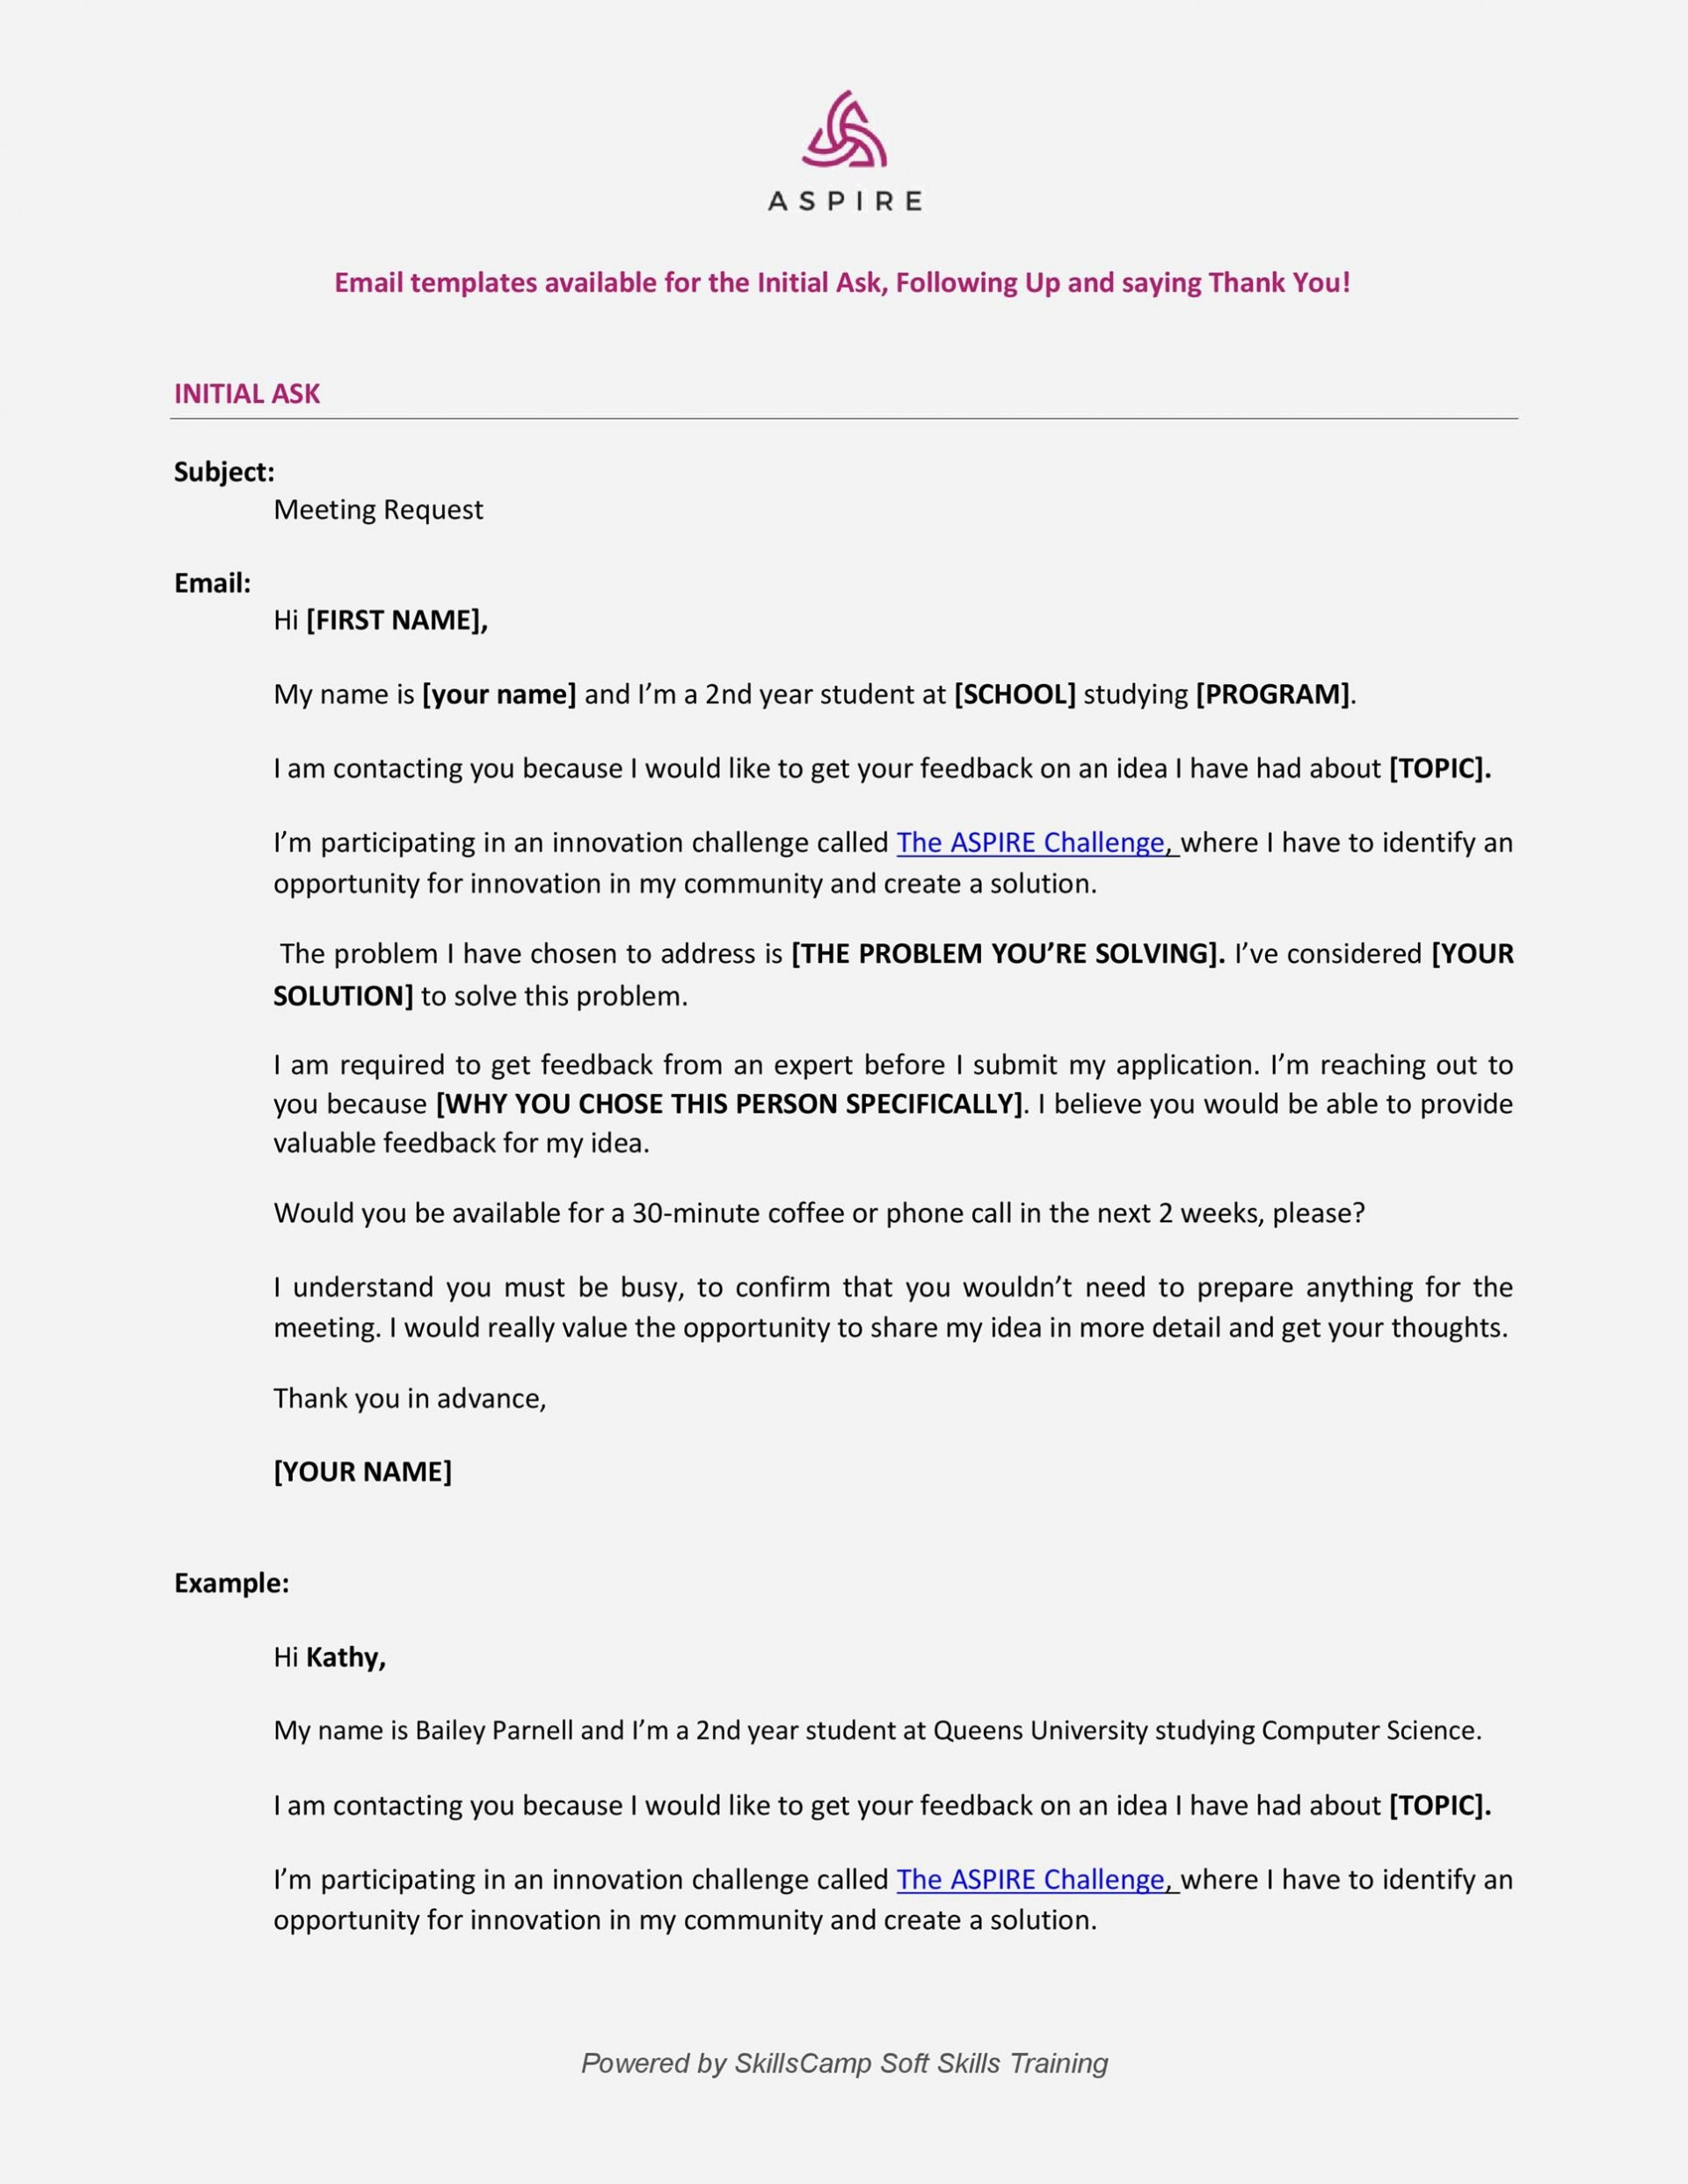 003 Archaicawful Follow Up Email Template Request Highest Quality 1920